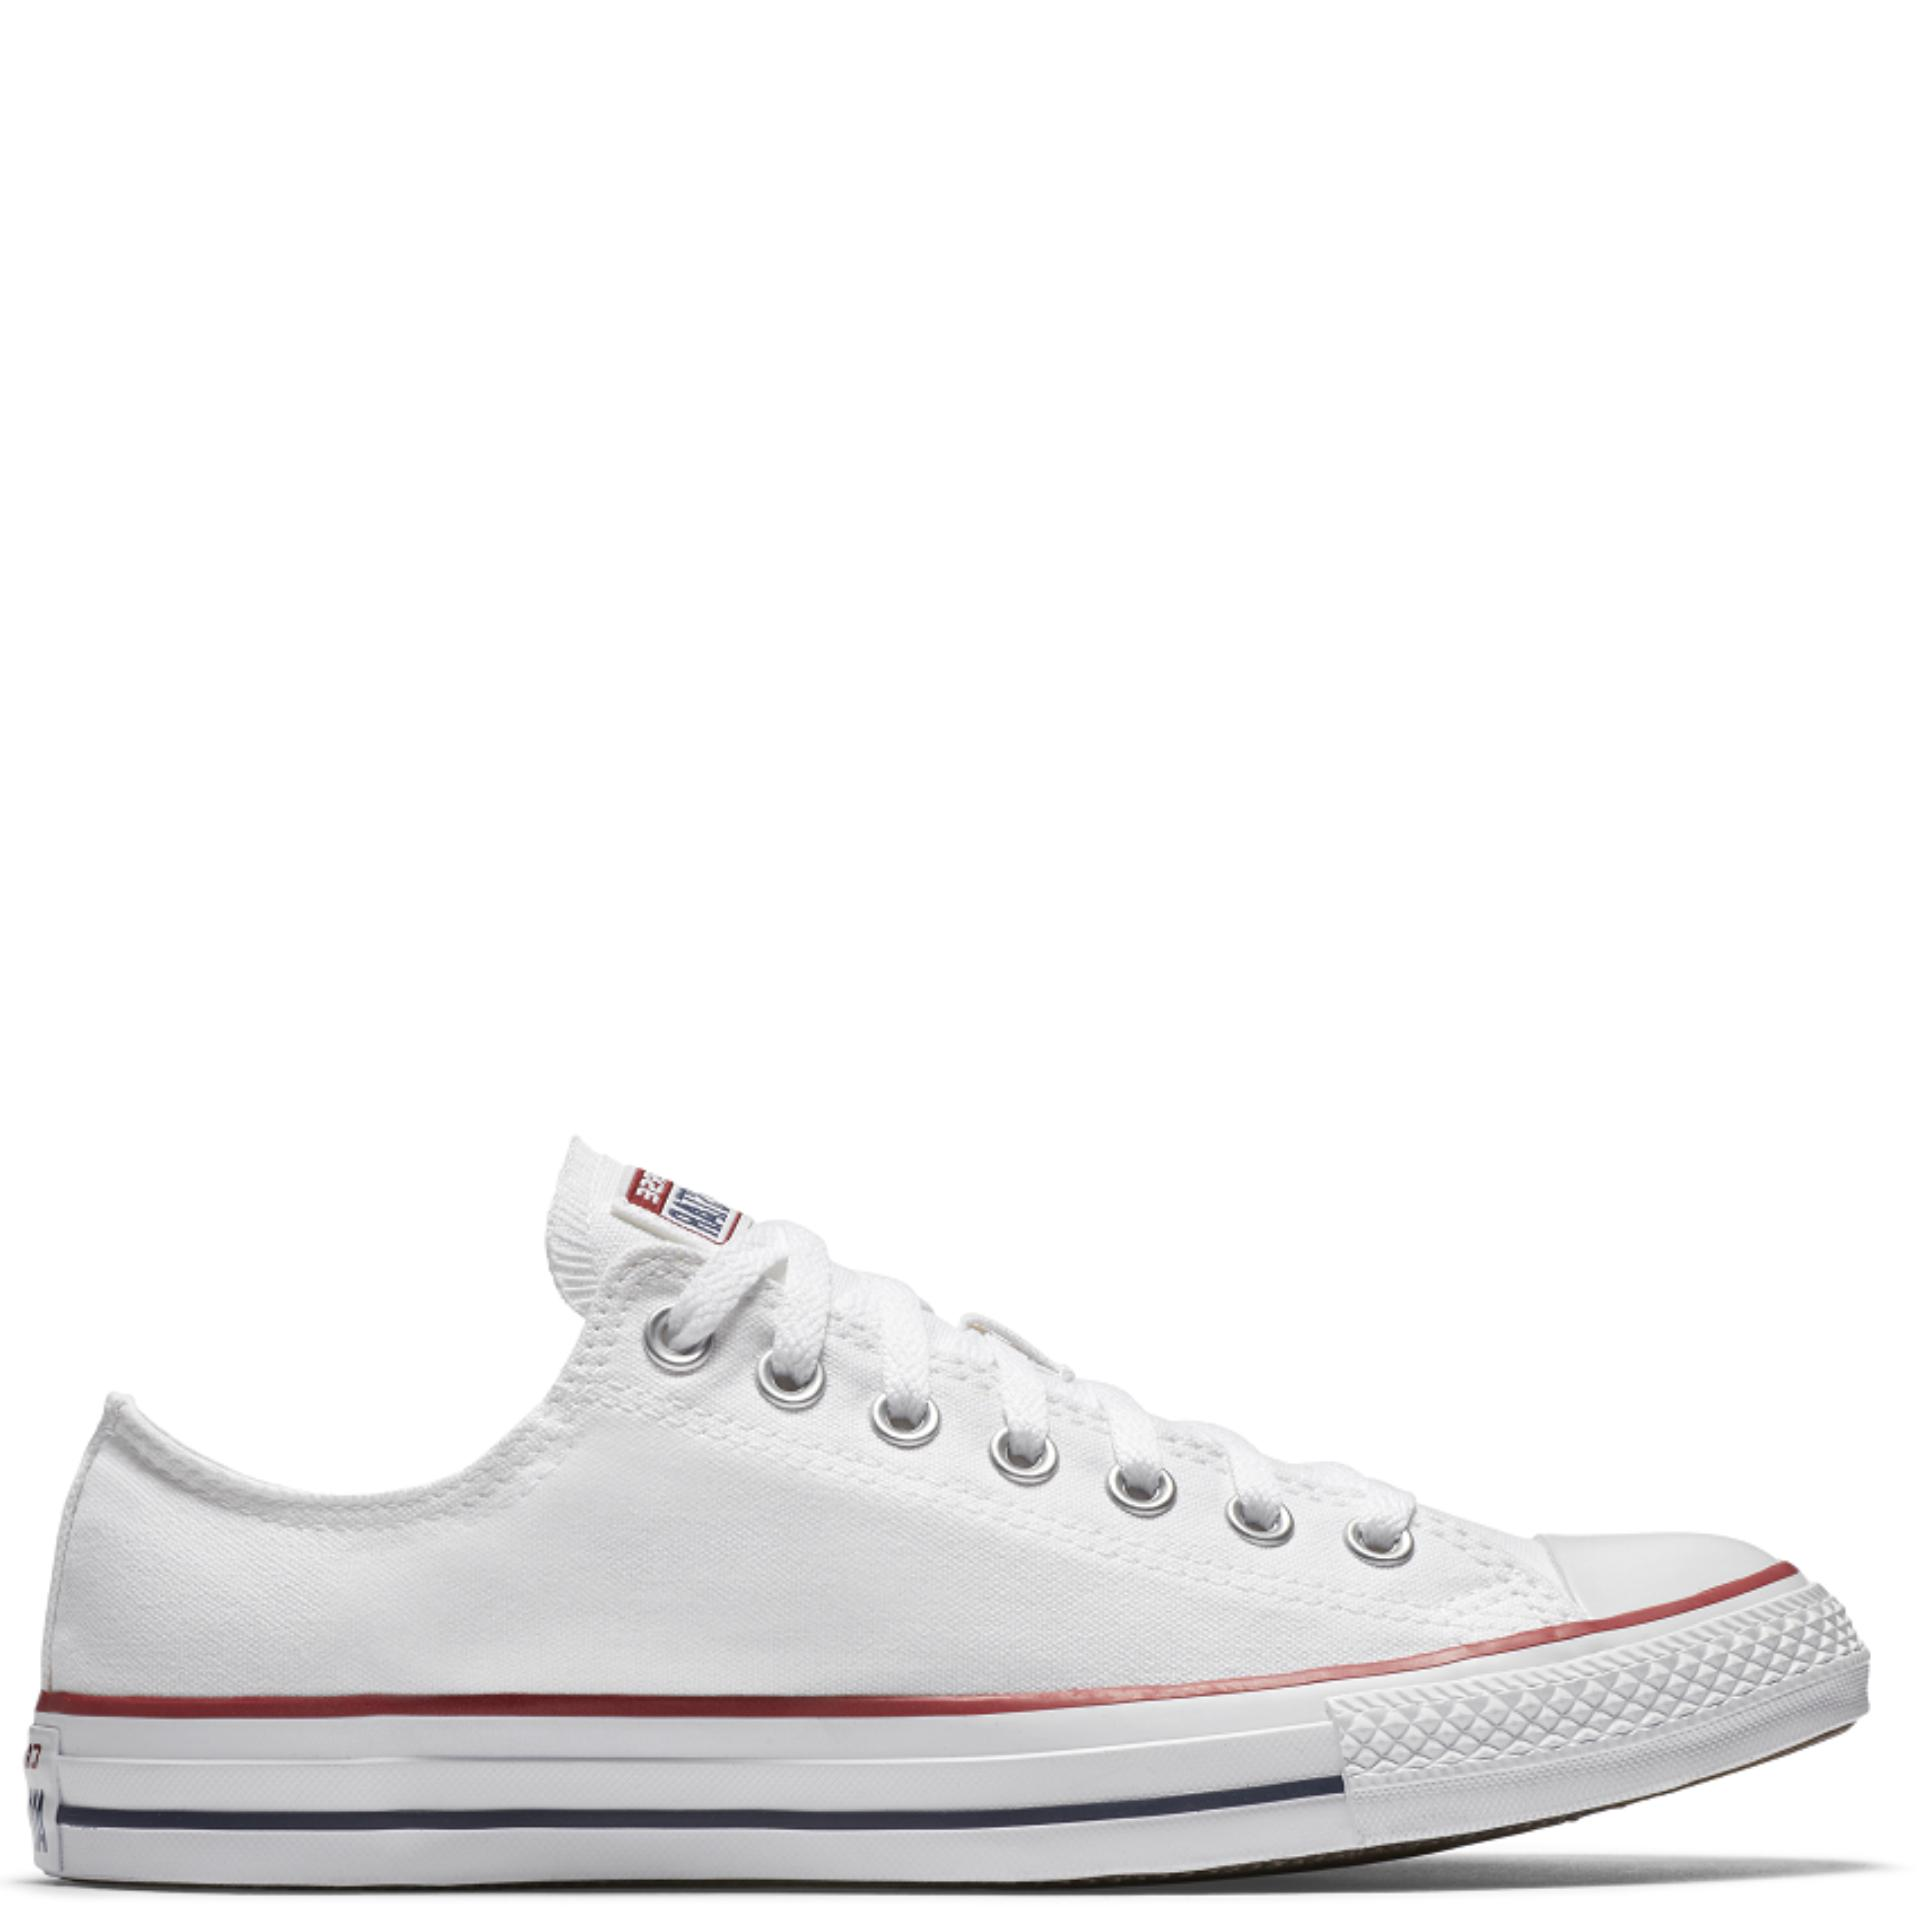 d3eb1b523947 CONVERSE CHUCK TAYLOR ALL STAR - OX - OPTICAL WHITE M7652C